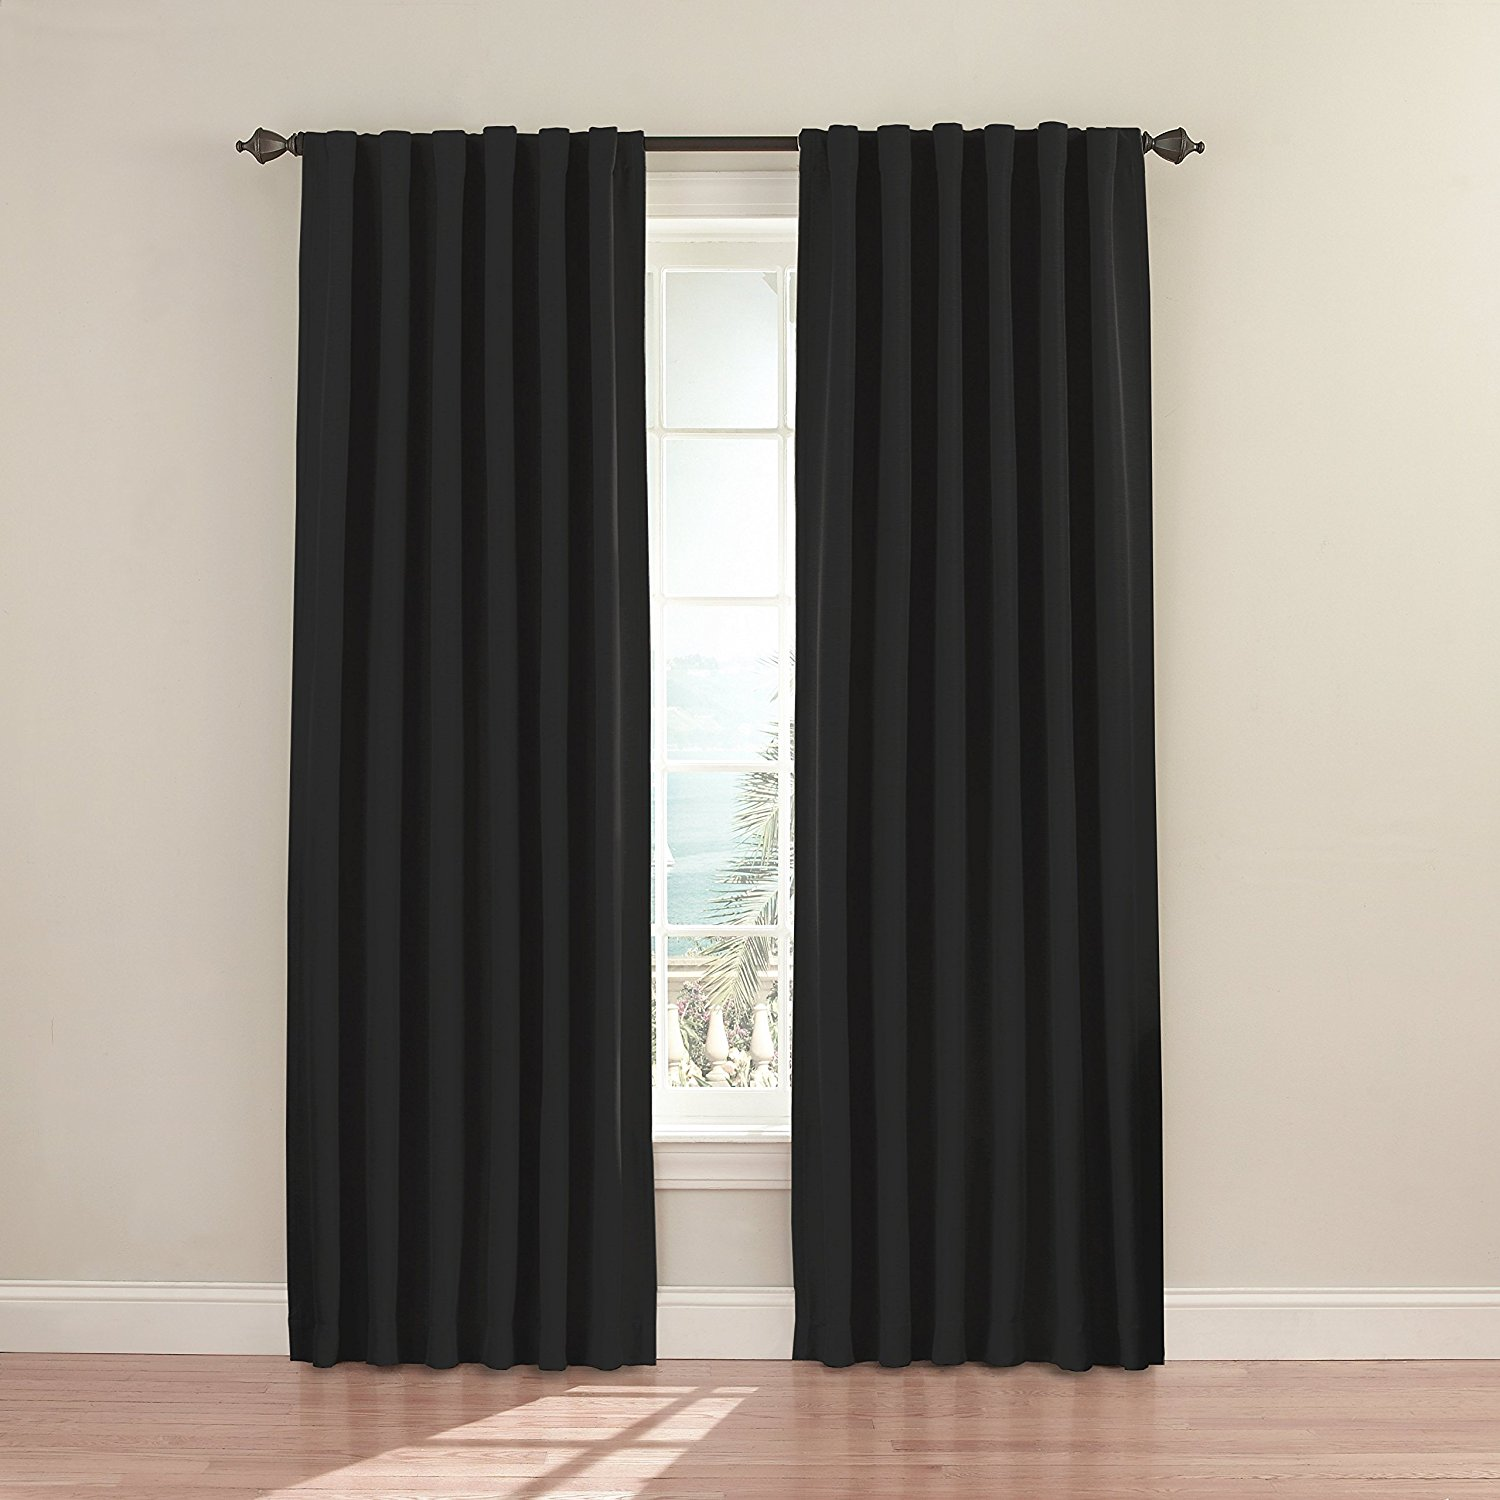 Inexpensive Blackout Curtains | Drapes Blackout | Cheap Blackout Curtains